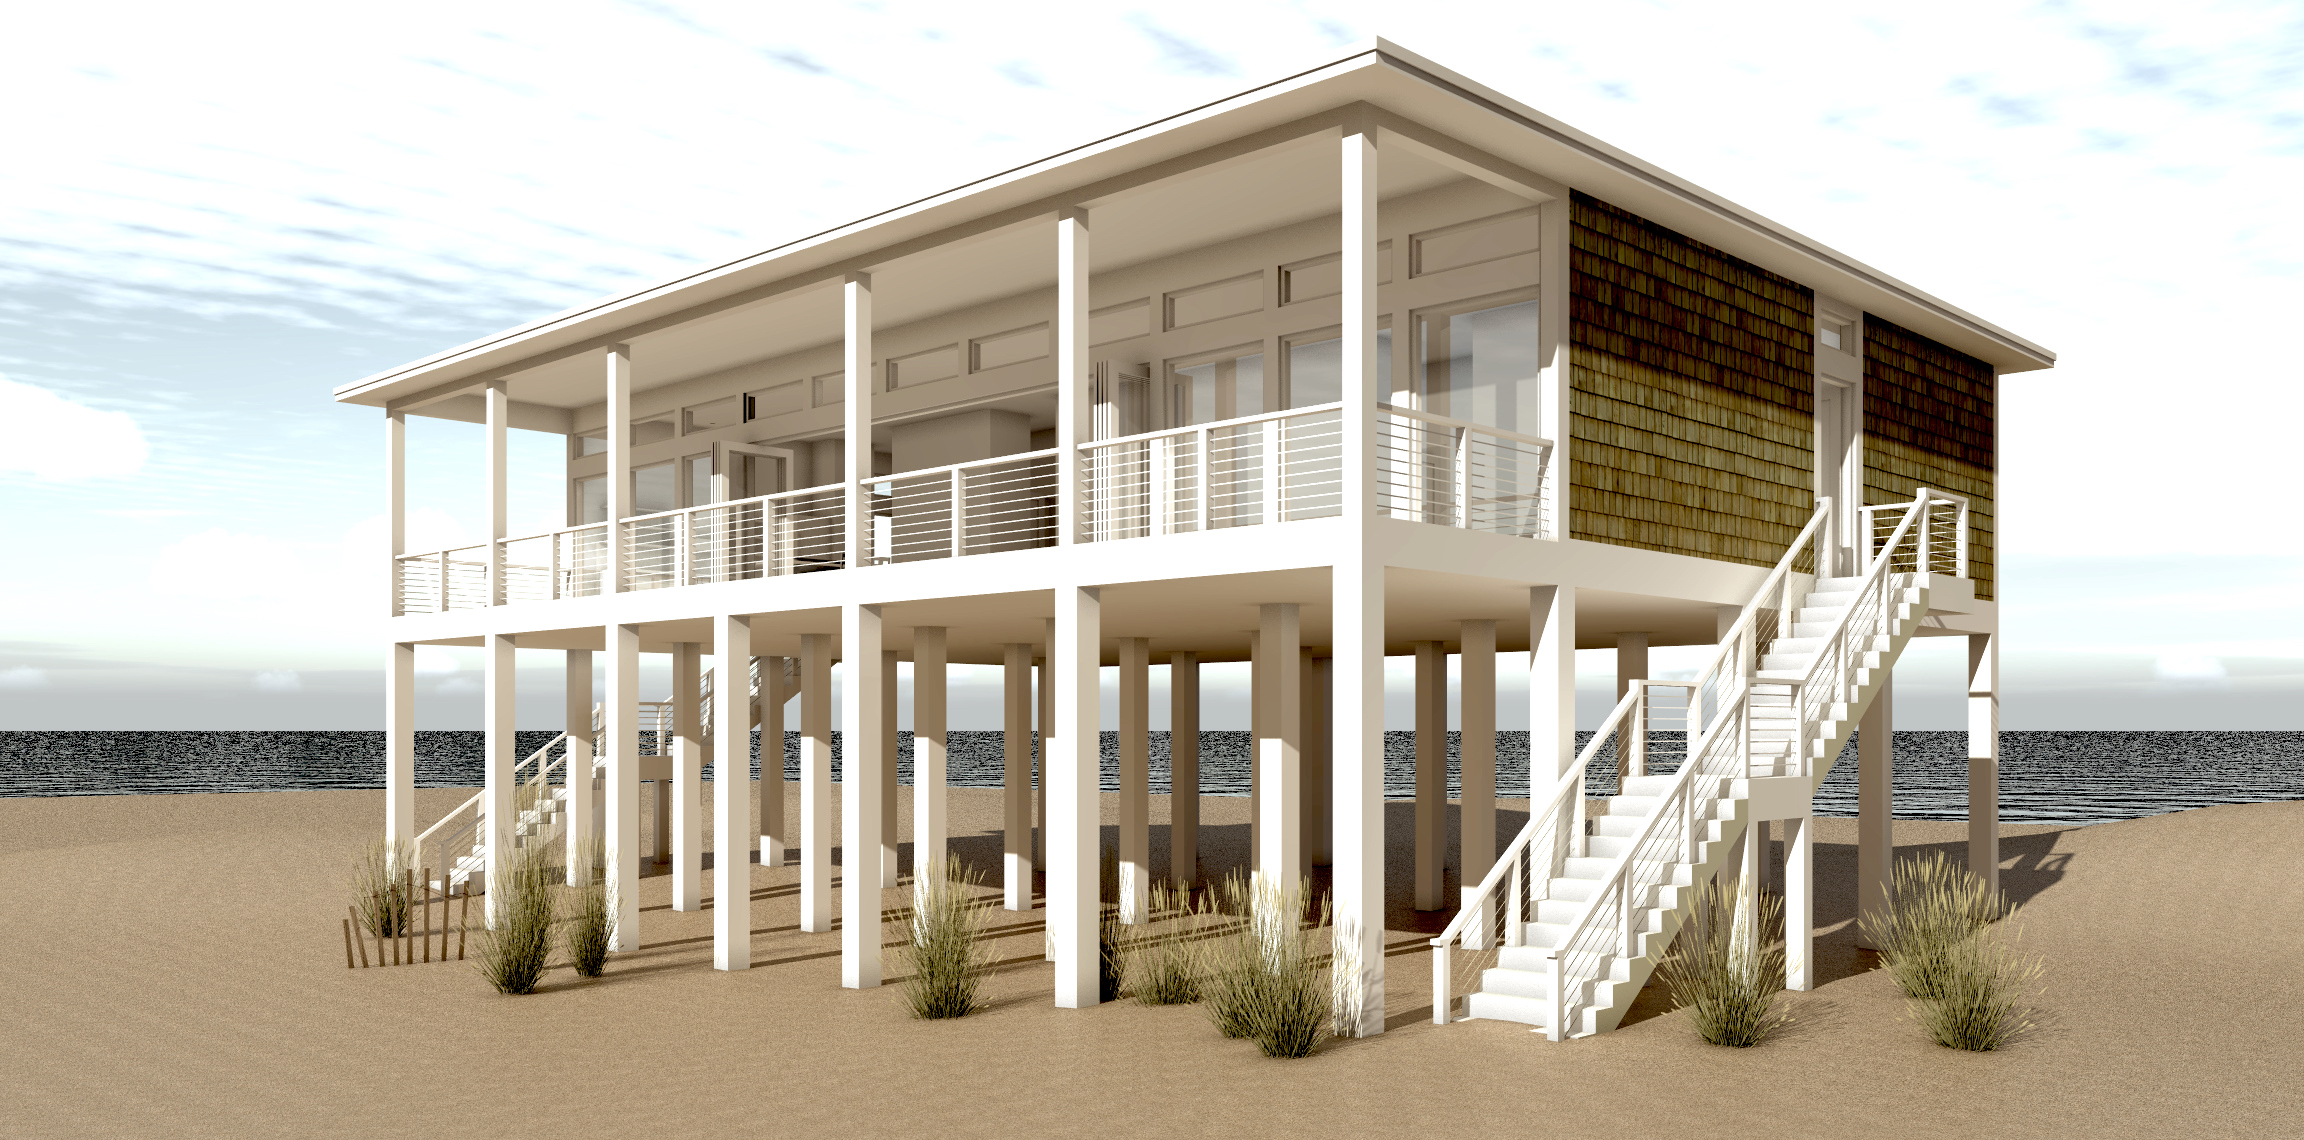 Sandcastle house plan tyree house plans for Beach house plans on stilts